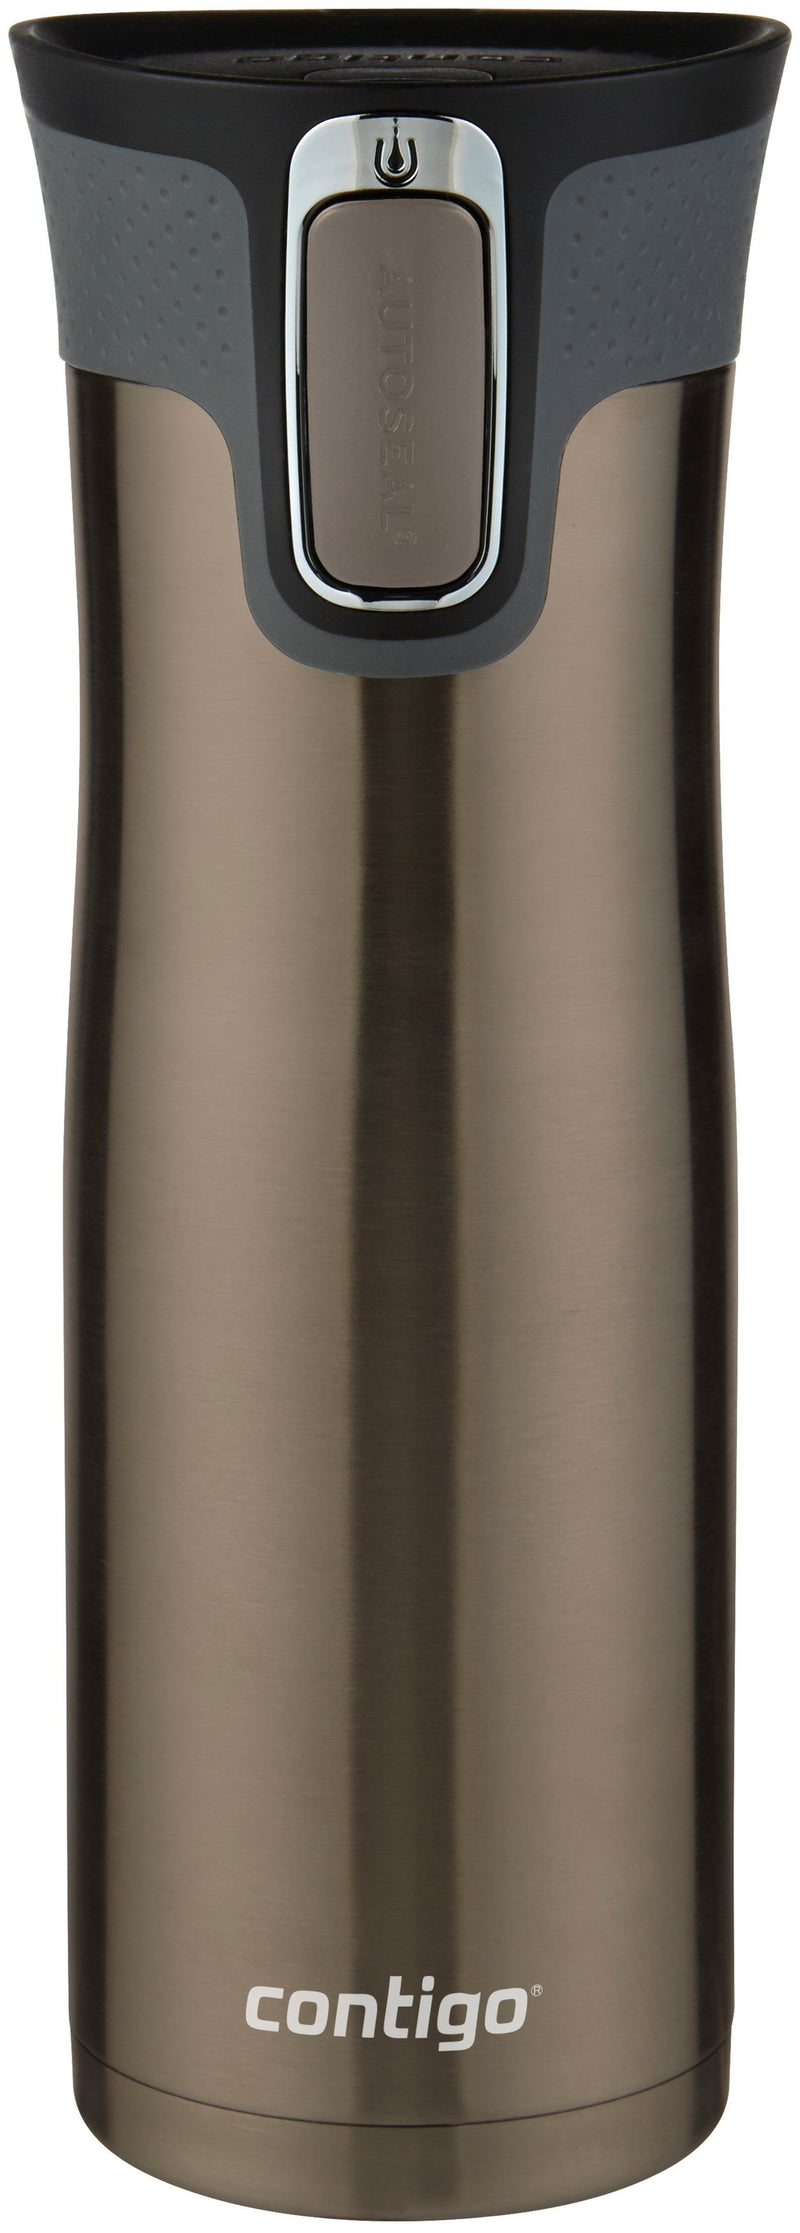 Contigo West Loop 2.0 16oz Stainless Steel Travel Mug-Latte | Kipe it